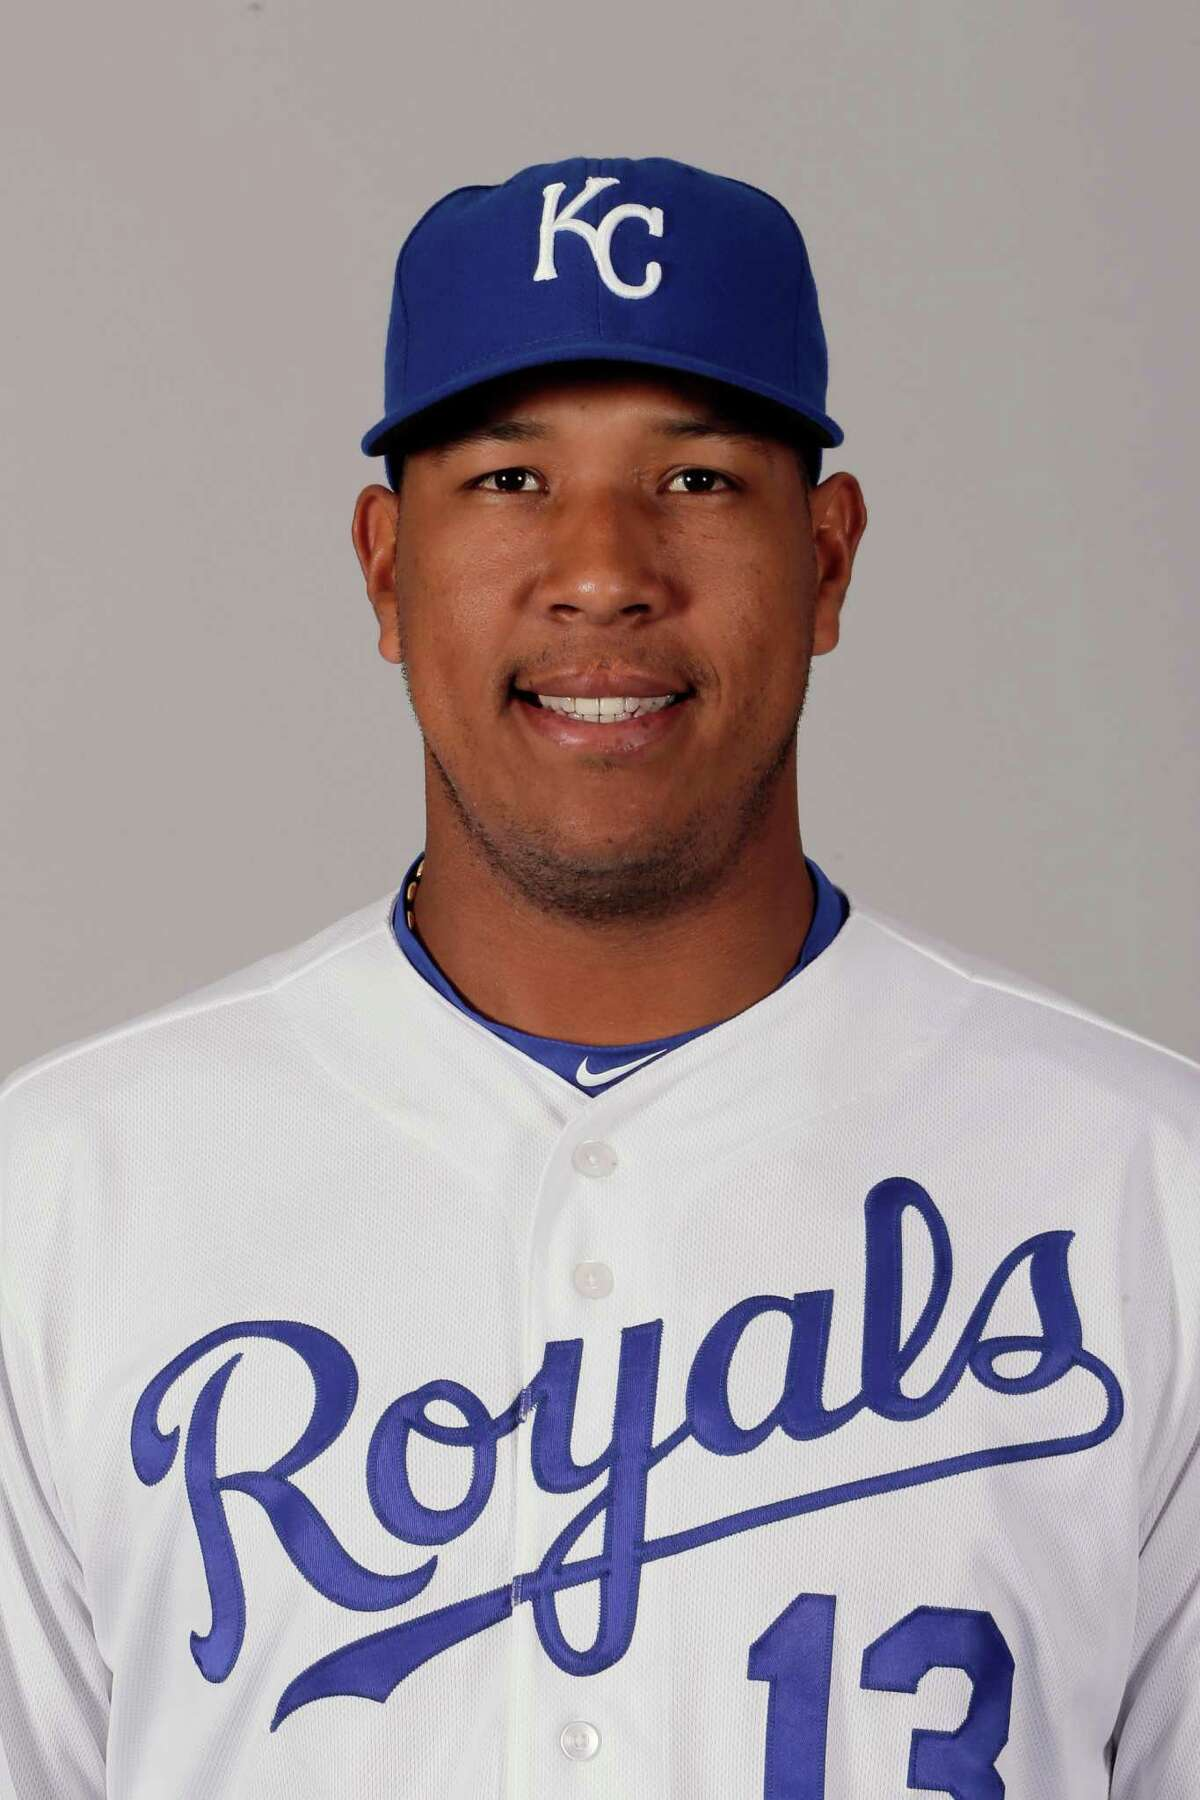 This is a 2016 photo of Salvador Perez of the Kansas City Royals baseball team. This image reflects the Kansas City Royals active roster as of Thursday, Feb. 25, 2016, when this image was taken. (AP Photo/Charlie Riedel)